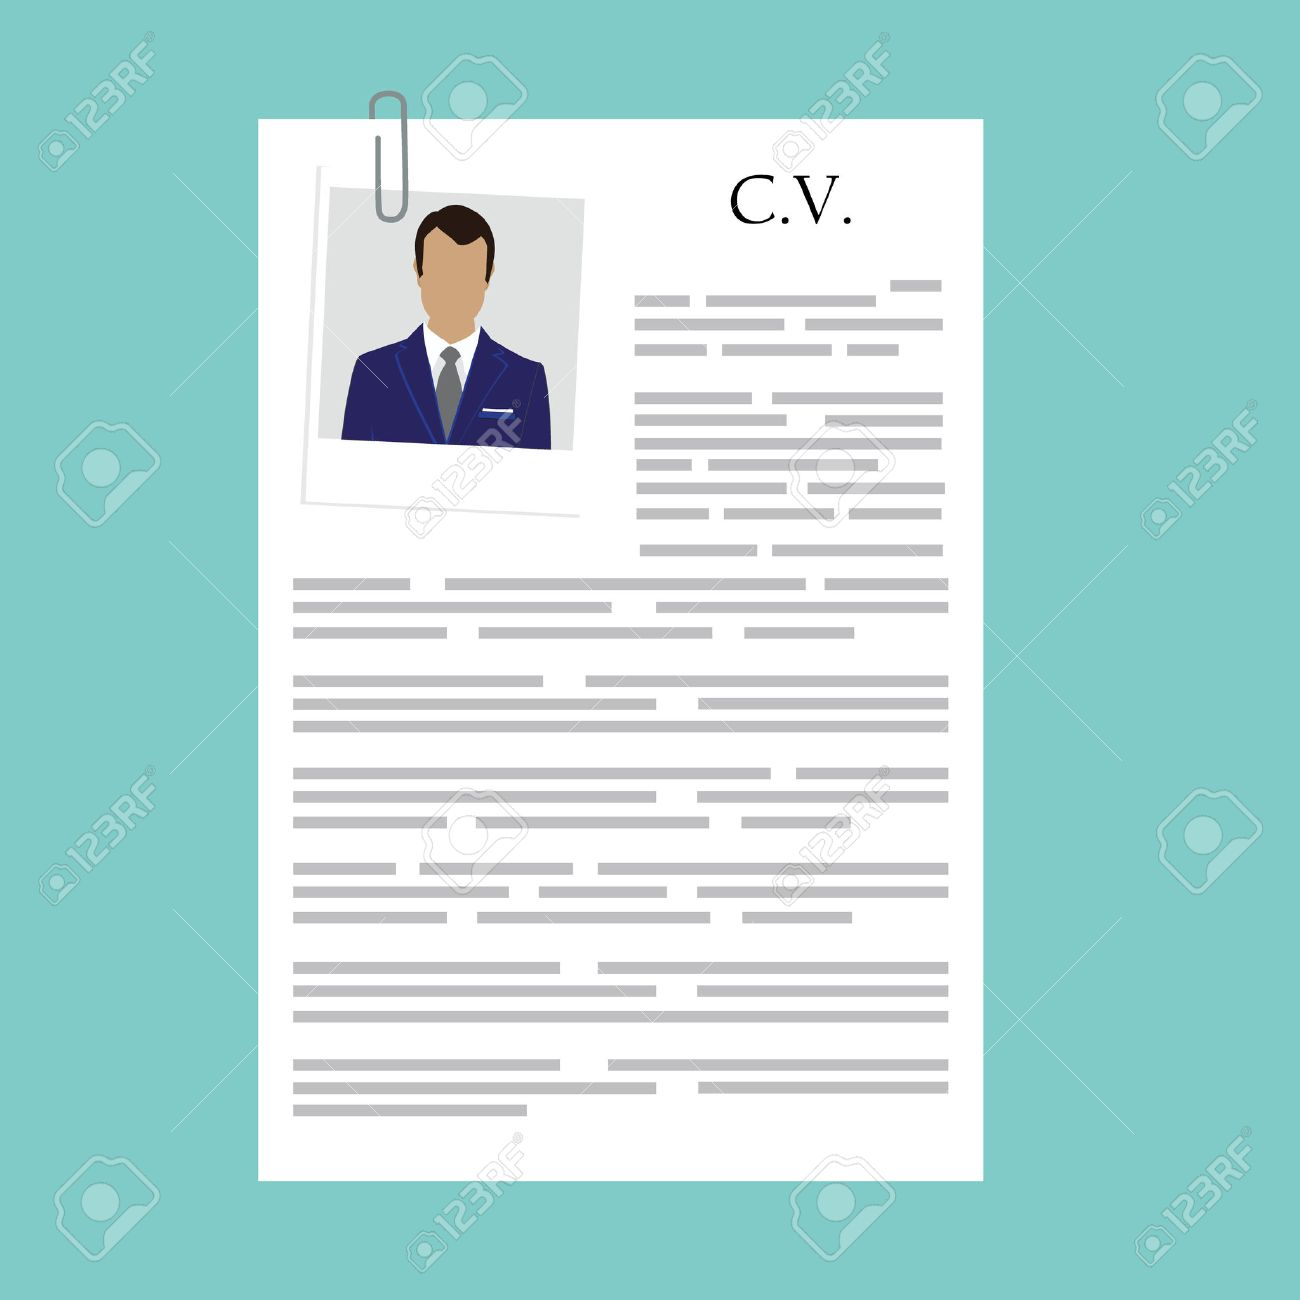 Vector Illustration Curriculum Vitae With Man Polaroid Photo